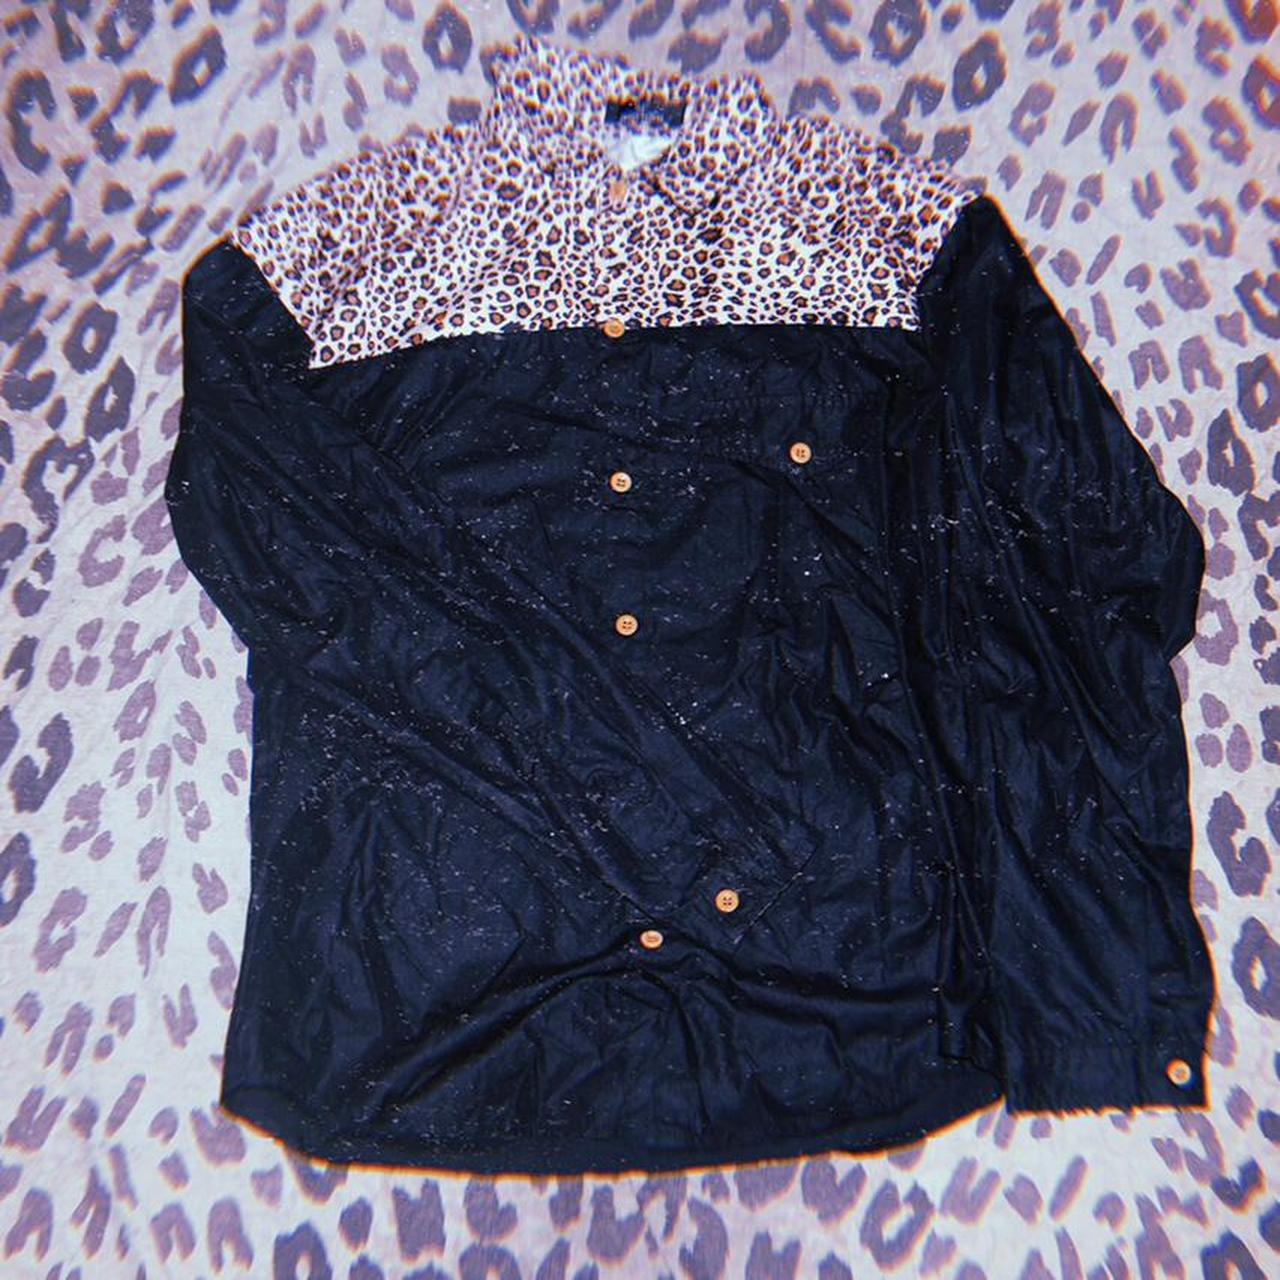 Product Image 1 - Leopard / cheetah and black